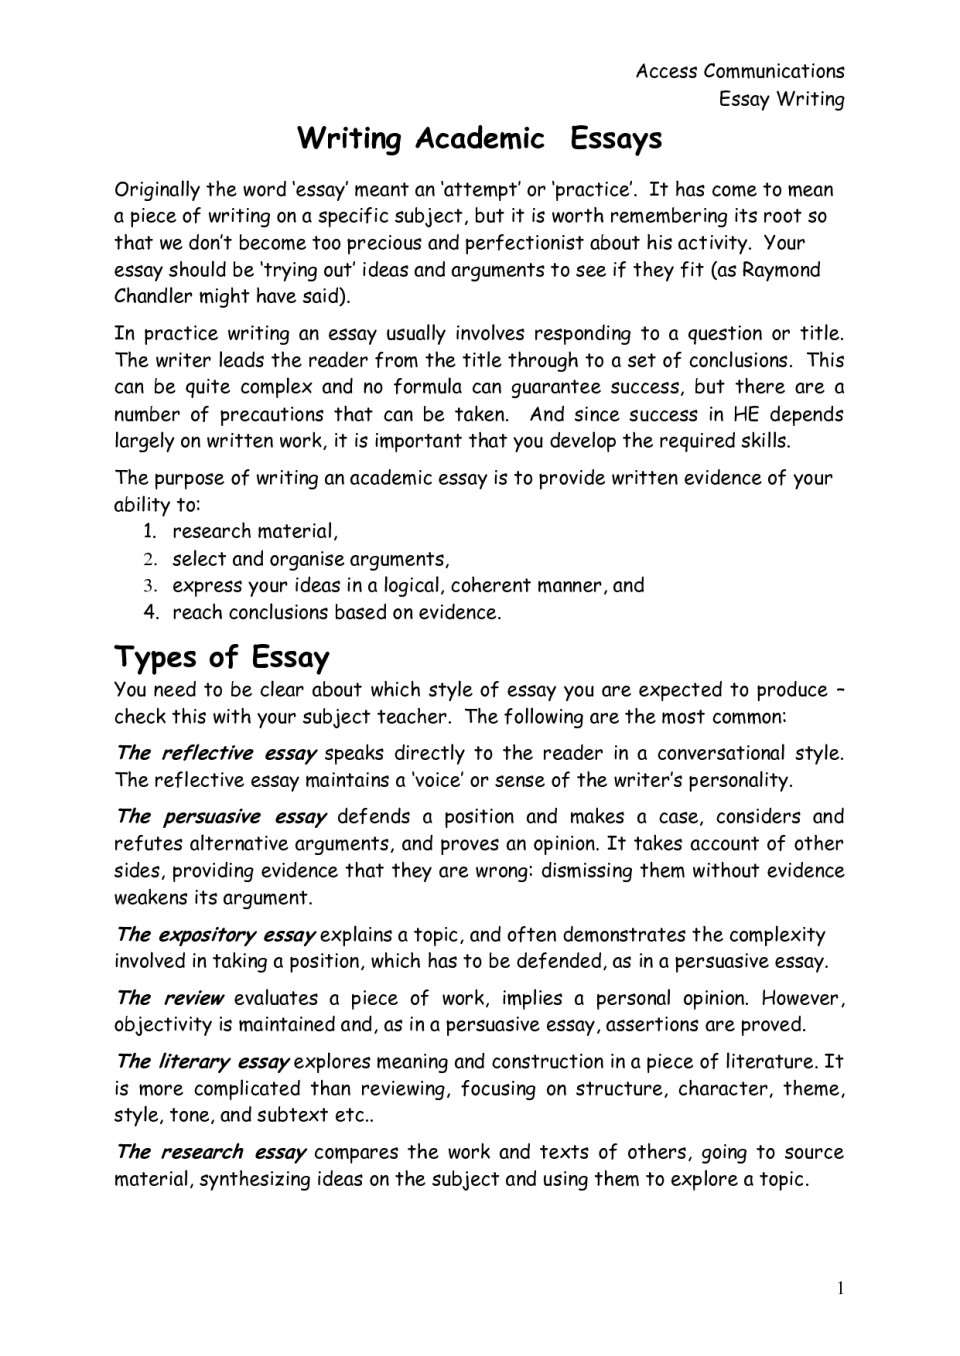 019 Write My Essay For Me Example Surprising Please Generator Free Online 960